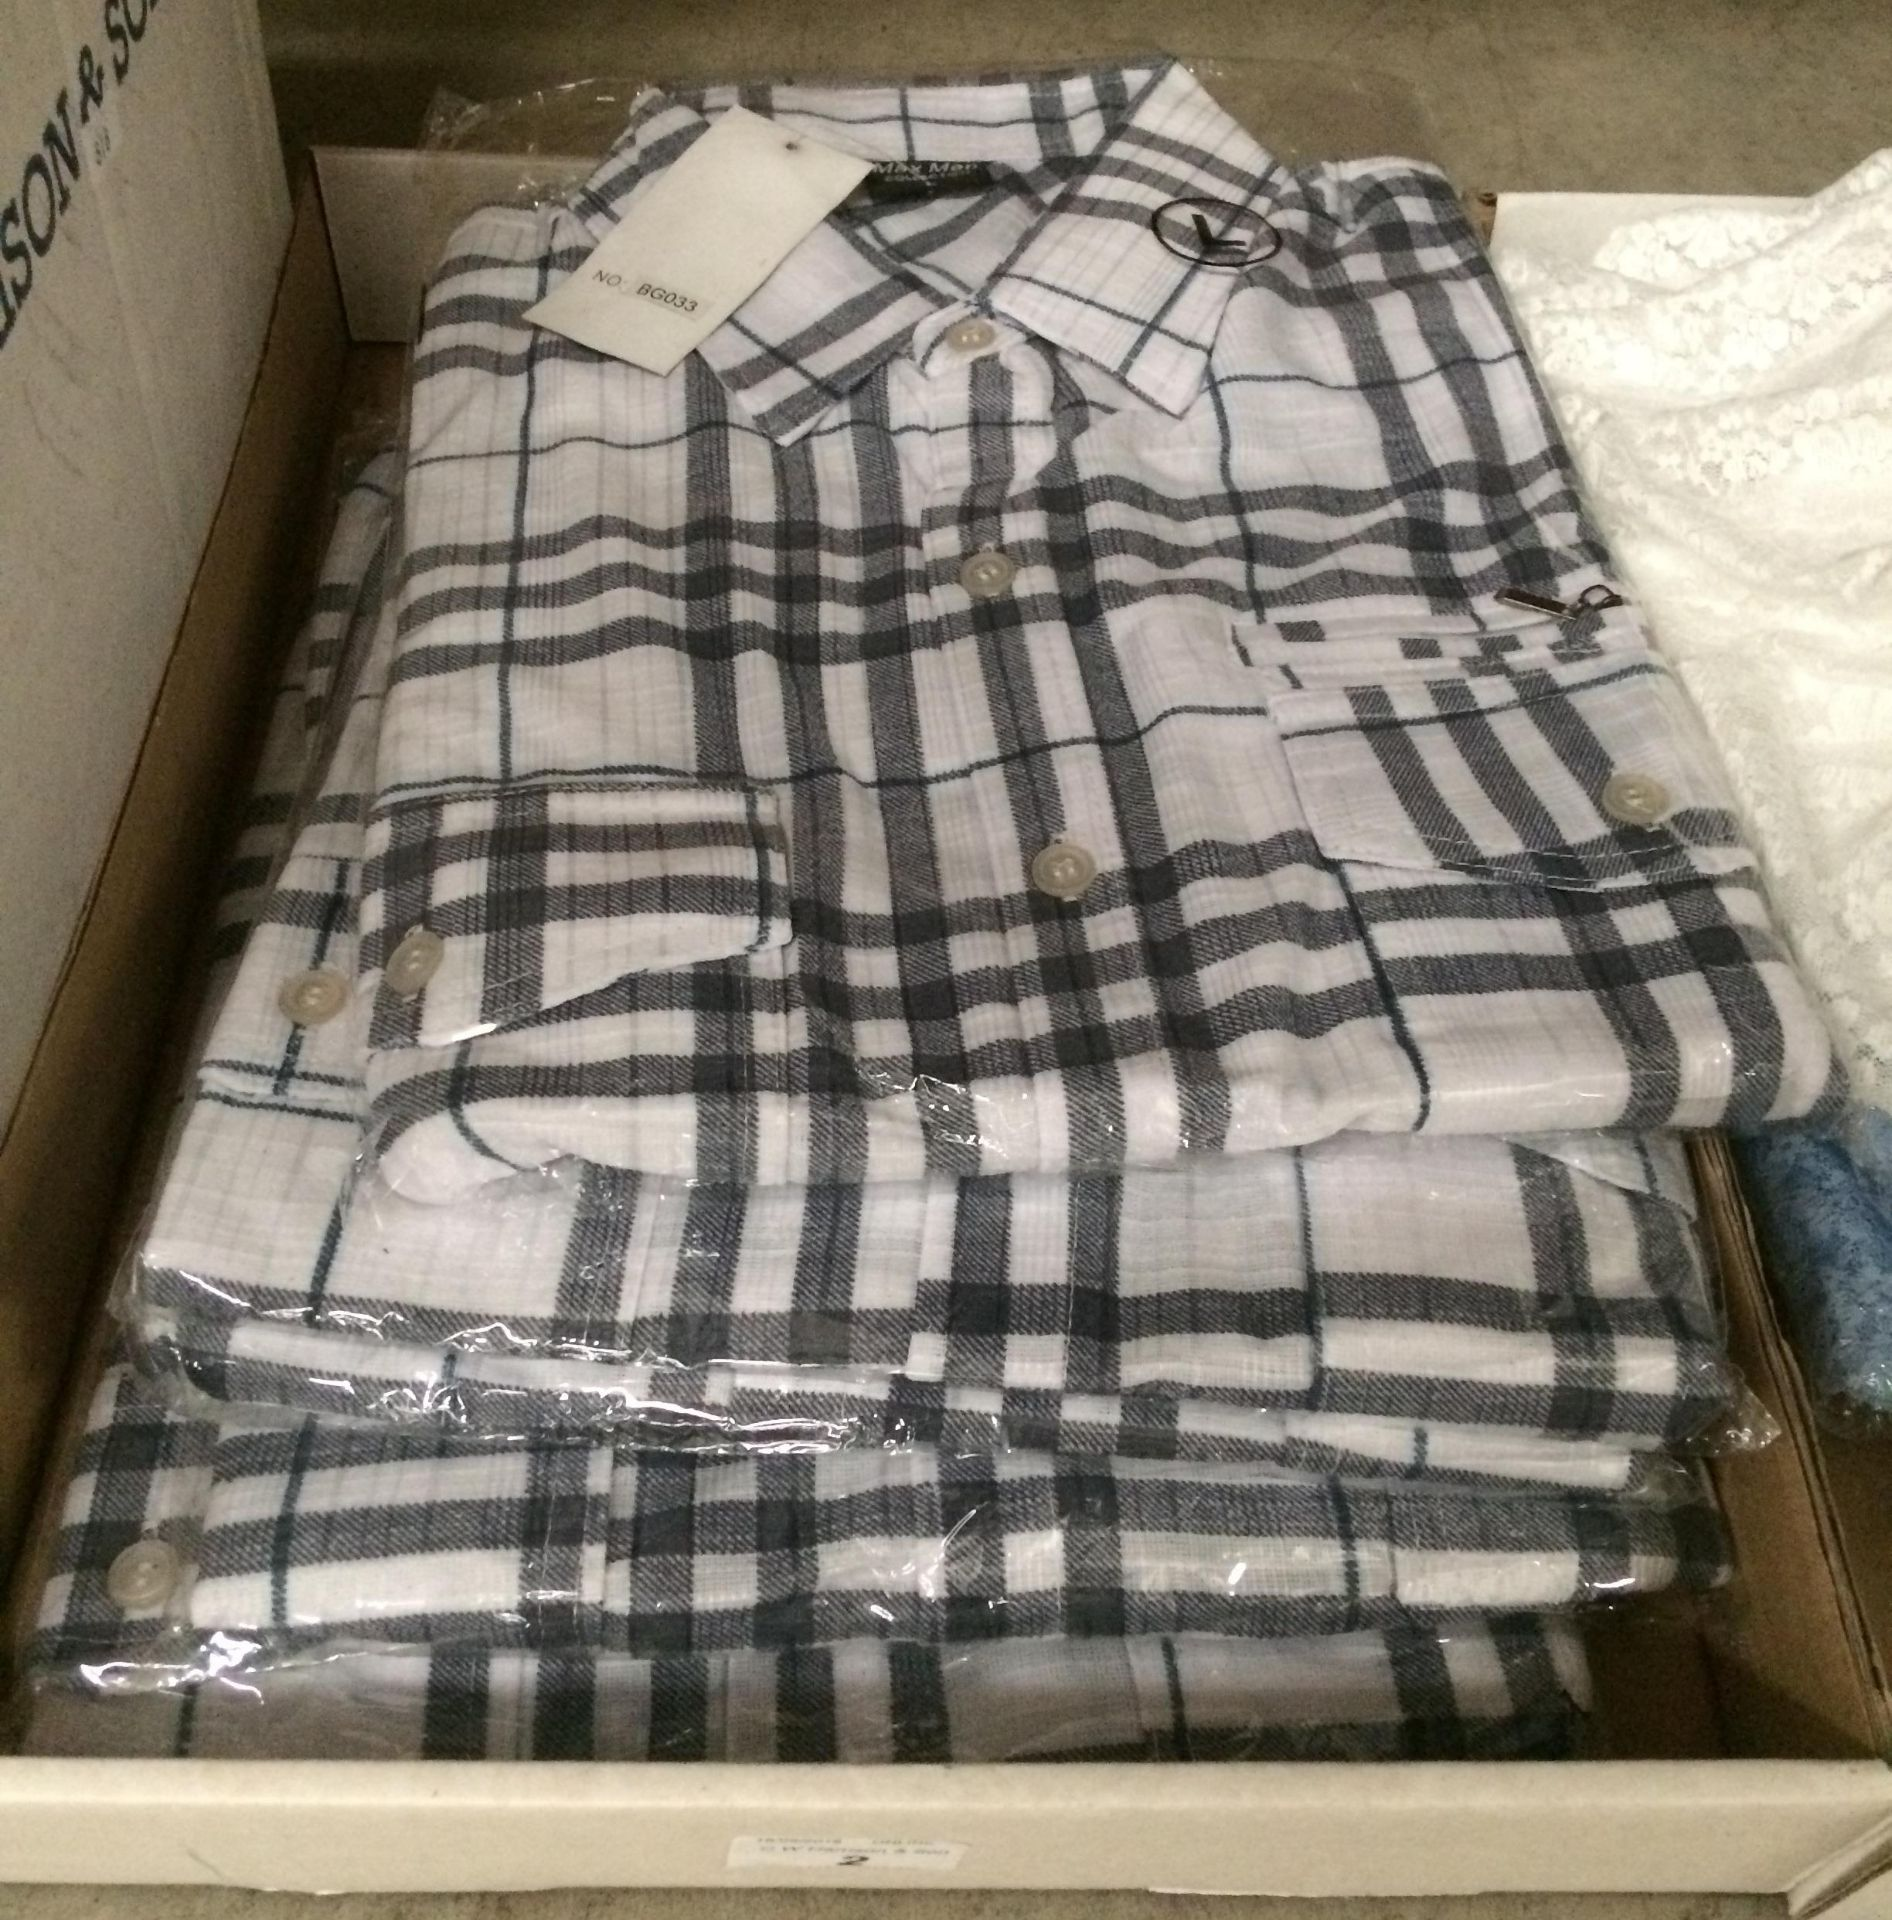 Lot 2 - 5 x gentlemen's short sleeve shirts in black and white check - sizes L, M, XL,